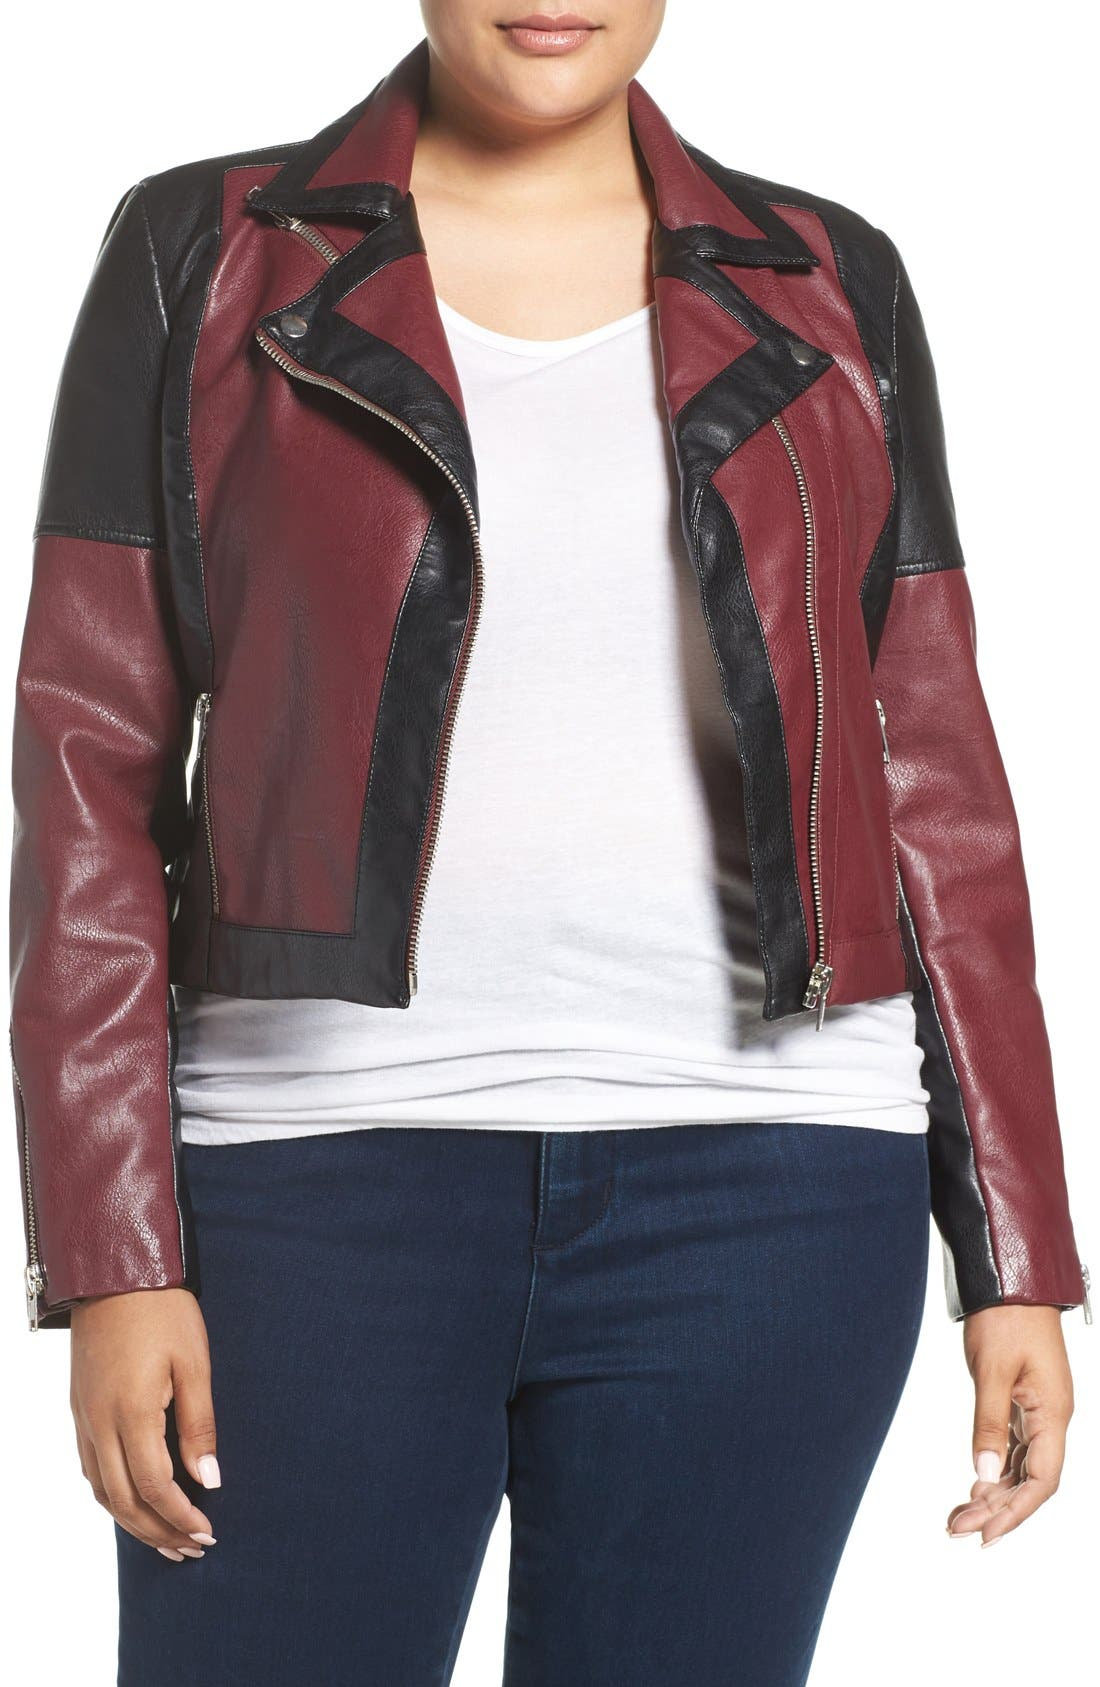 Alternate Image 1 Selected - Tart 'Justine' Colorbock Faux Leather Jacket (Plus Size)